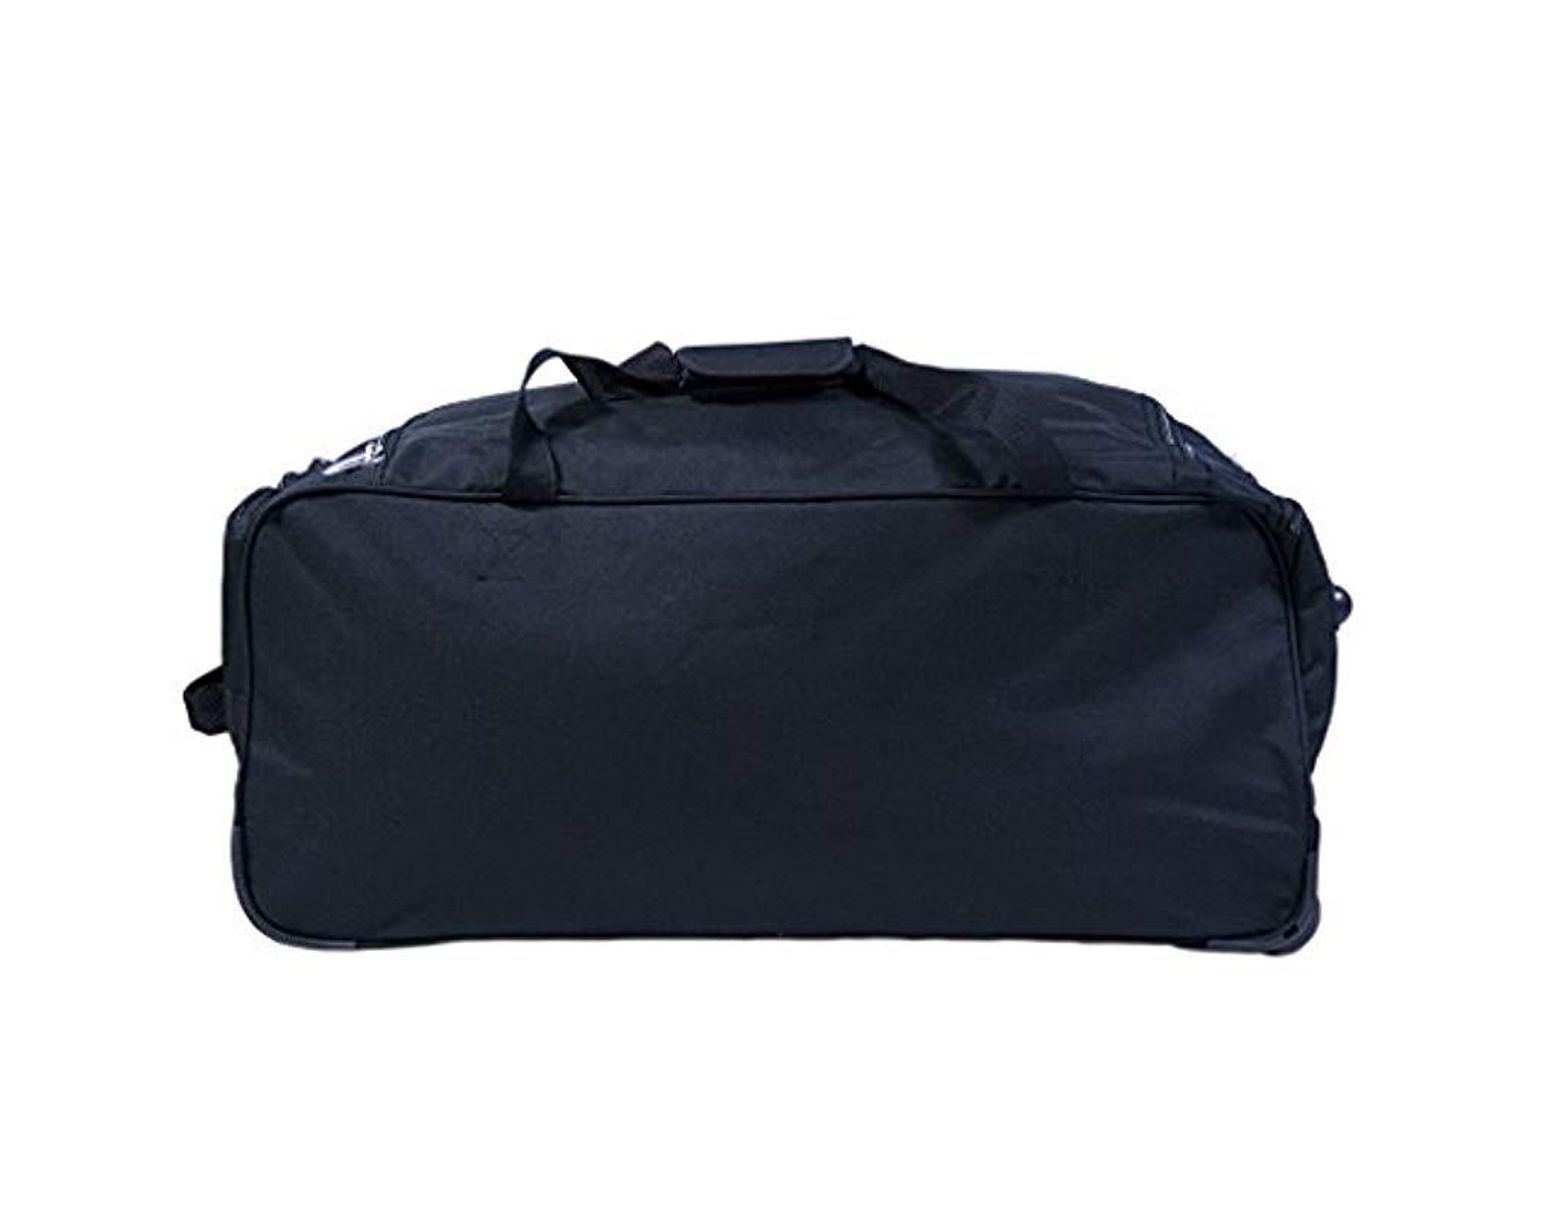 0b38cd1c63a U.S. POLO ASSN. 30in Deluxe Rolling Duffle Bag Duffel Bag in Black for Men  - Save 38% - Lyst